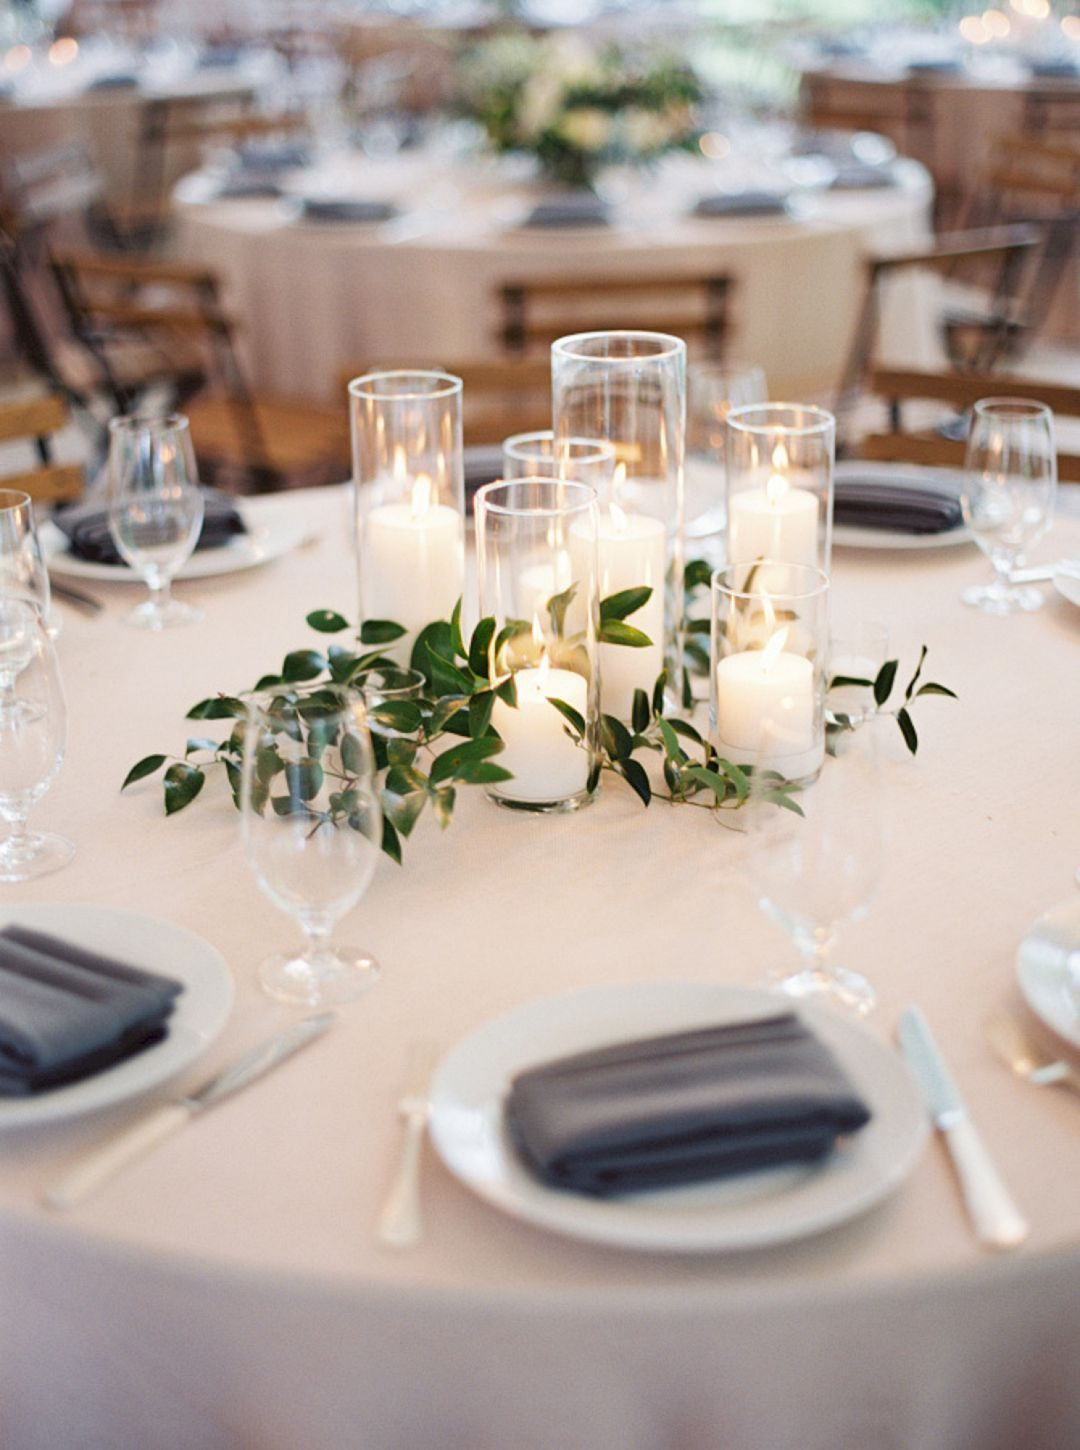 Fashion style Table Wedding arrangements ideas pictures for woman